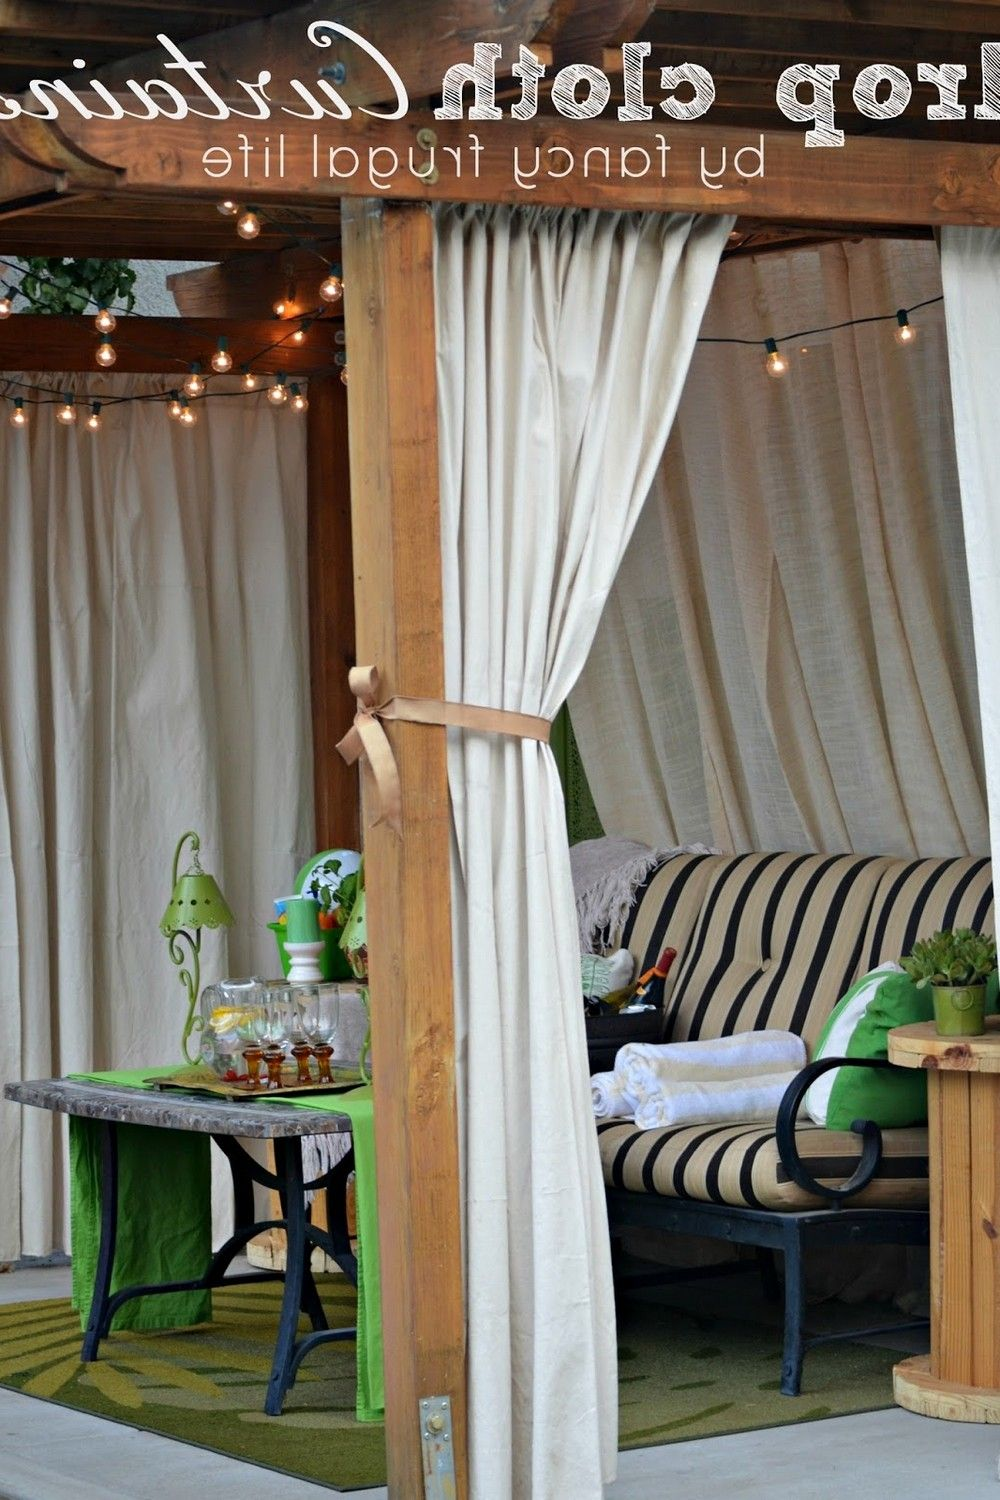 Deck Decor In 2020 Outdoor Curtains For Patio Patio Makeover Outdoor Curtains Cheap